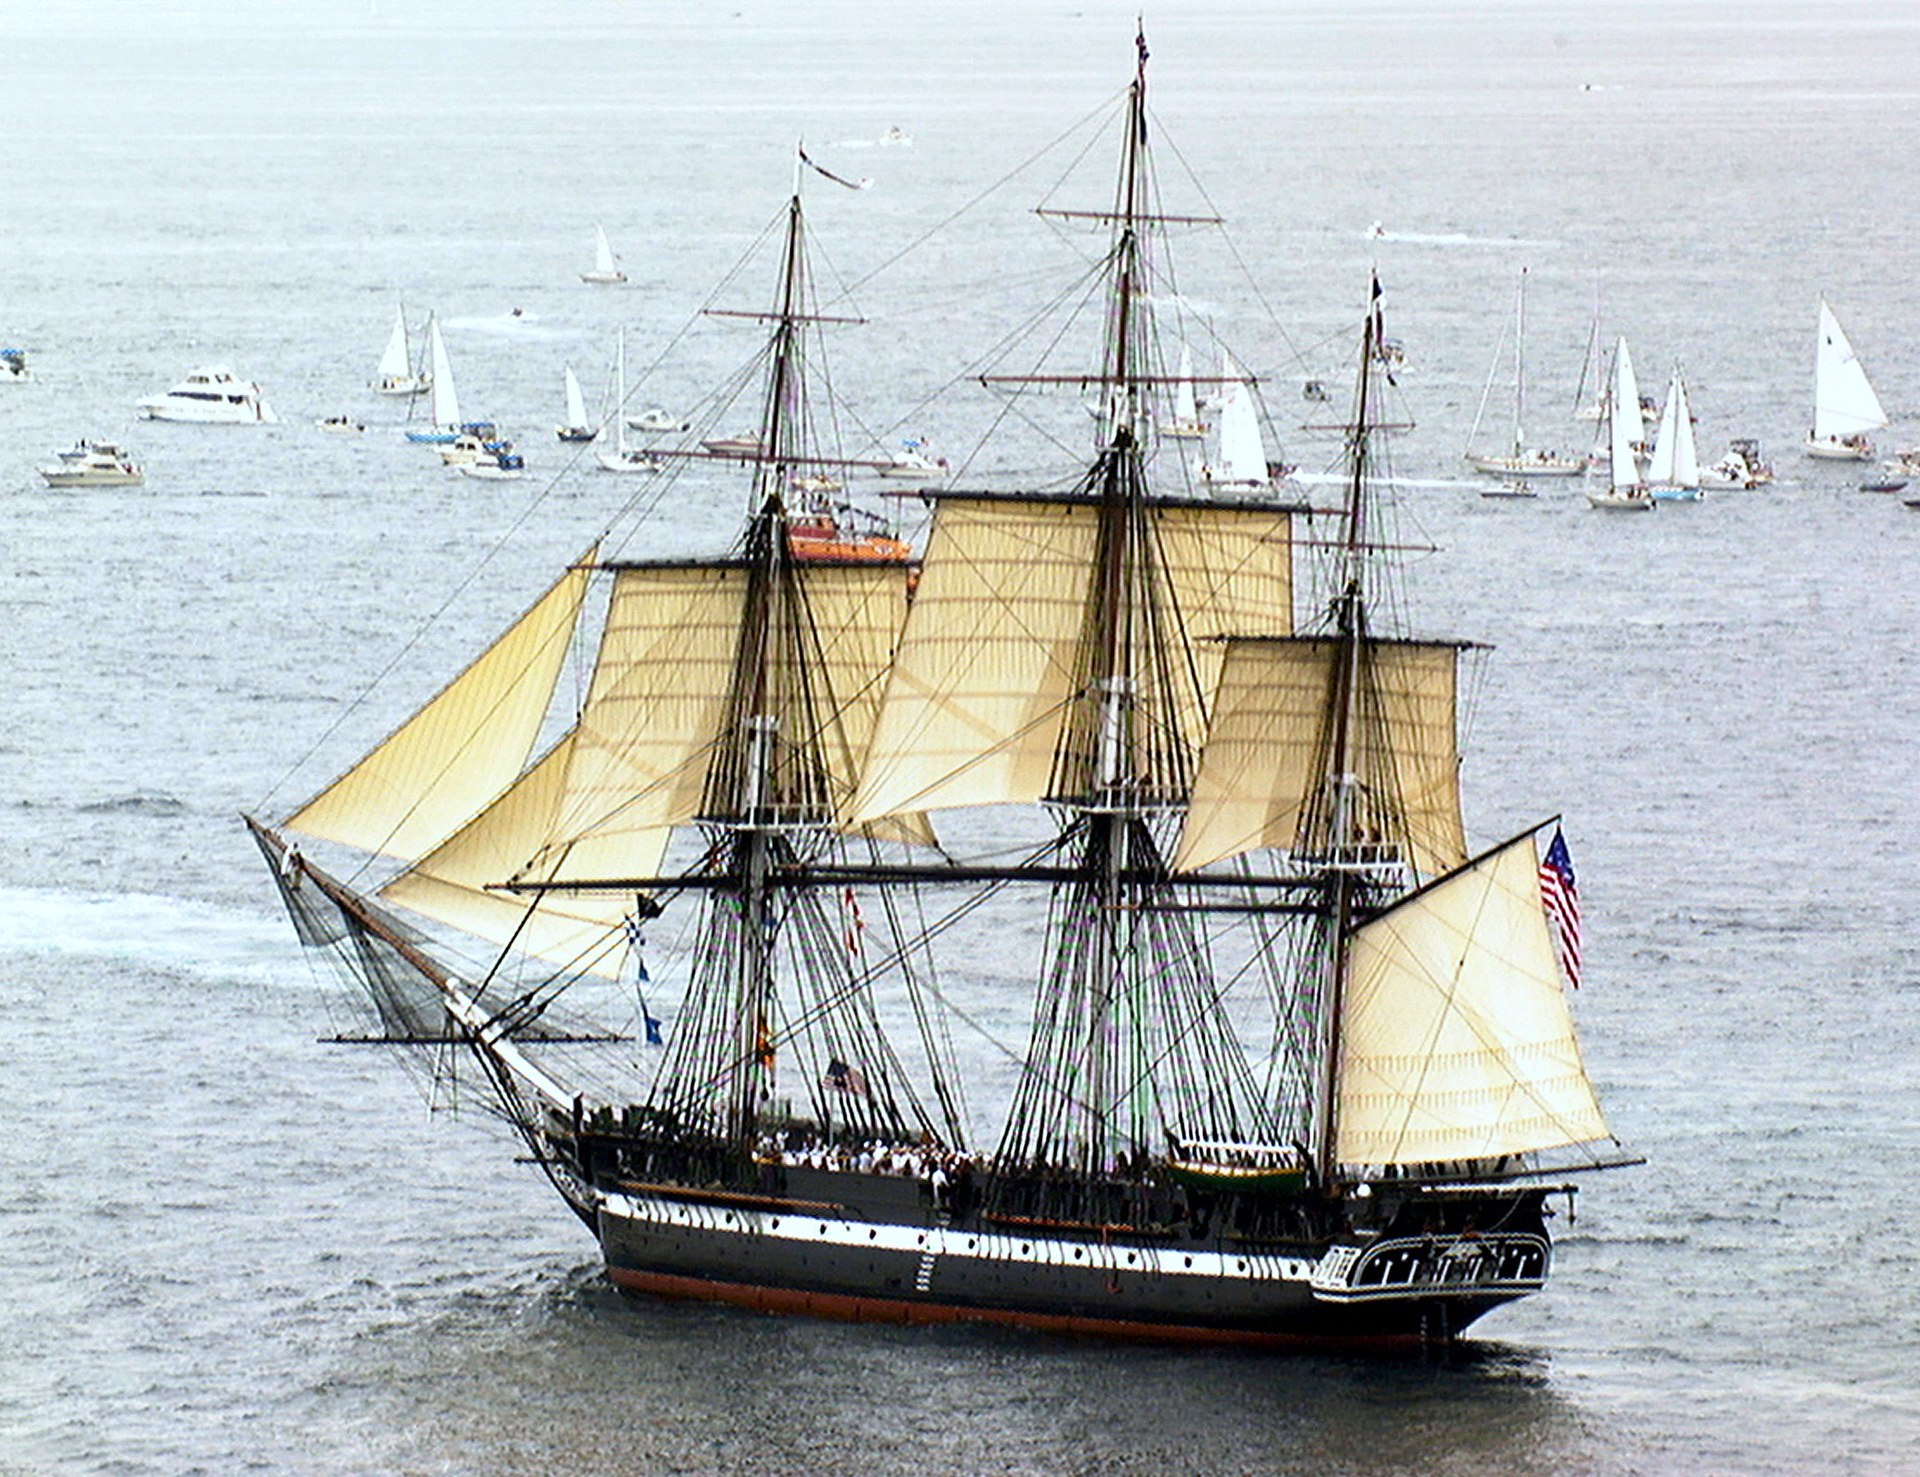 Uss Constitution List of current ships ...